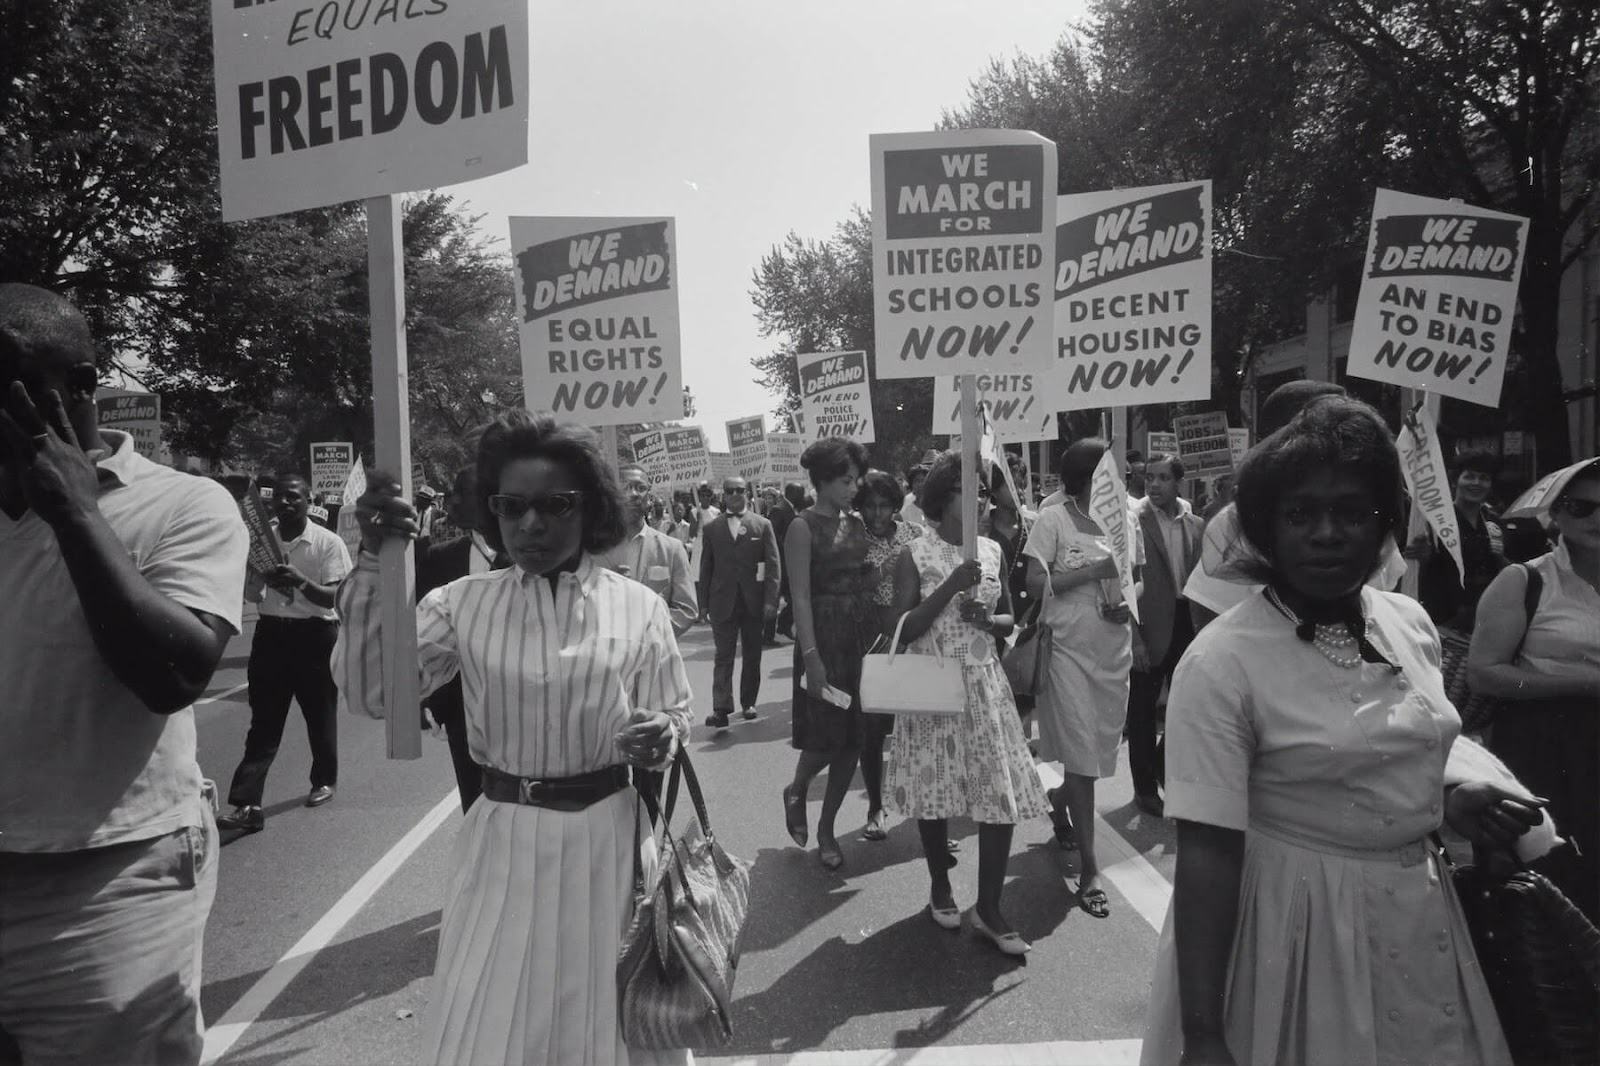 protestors for racial integration march down the street holding the signs in the 1960's.